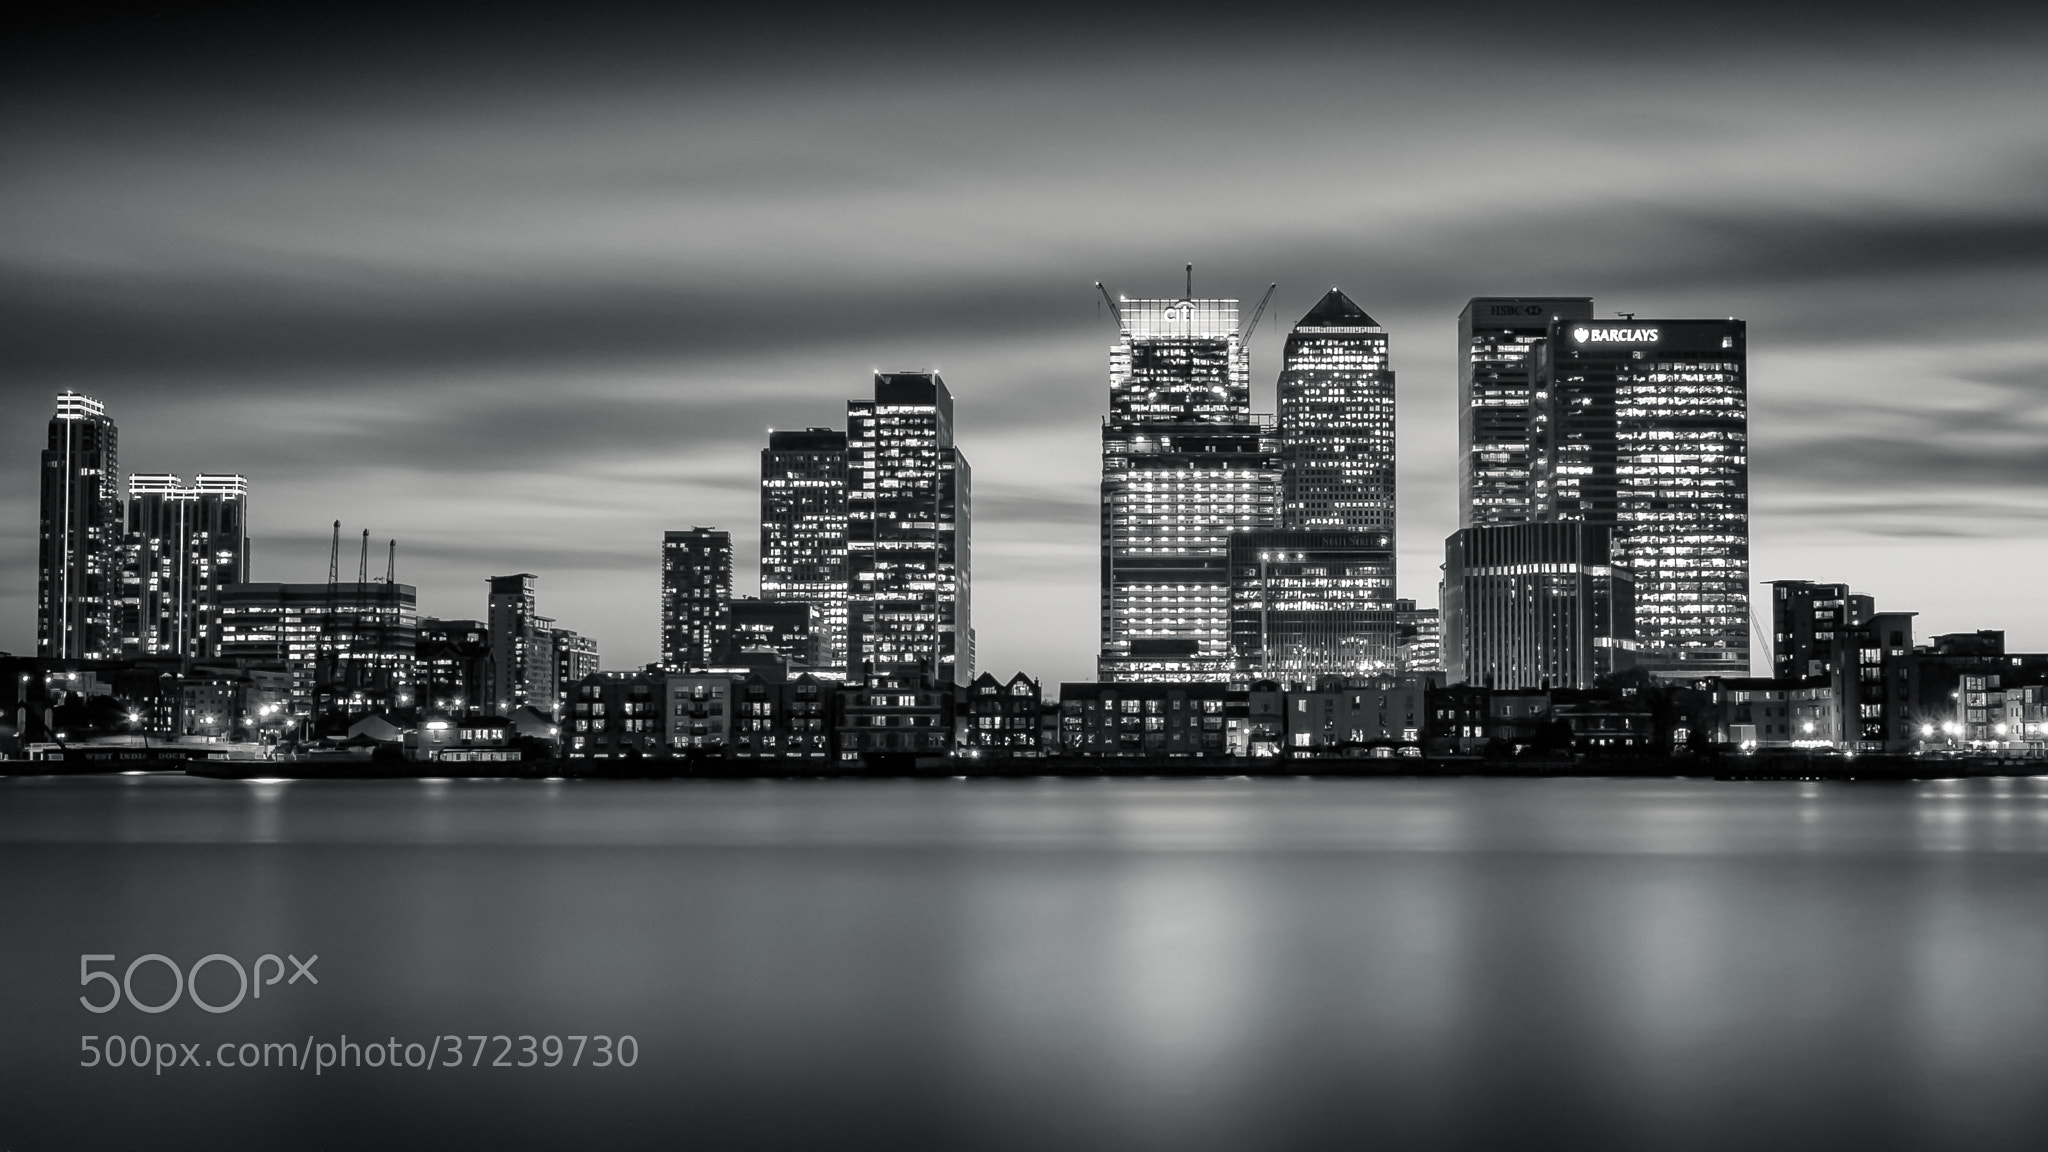 Photograph Canary Wharf Skyline by .Vulture Labs on 500px